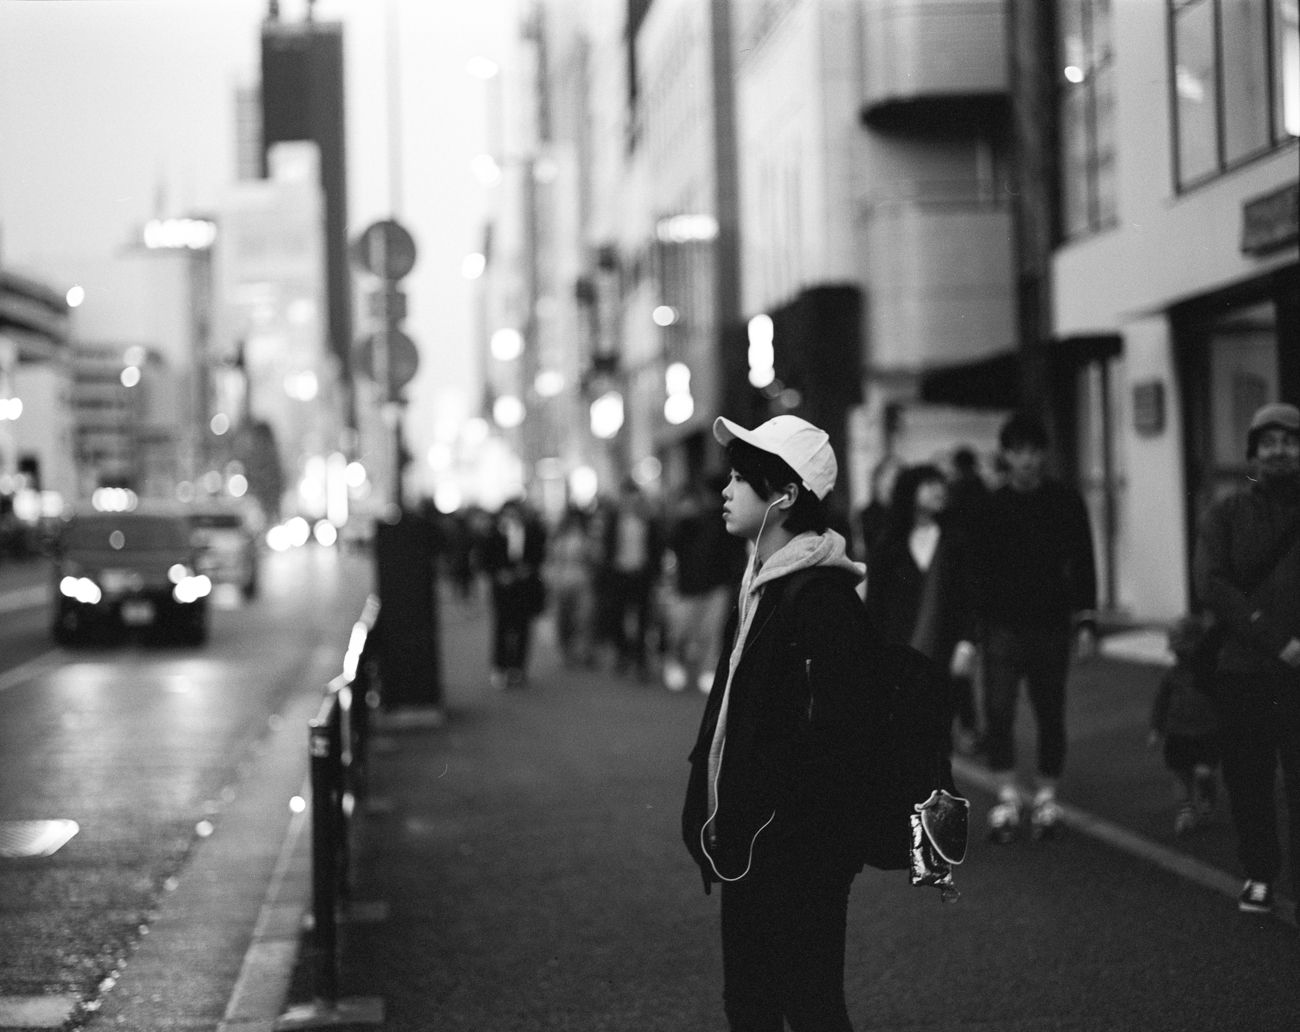 Analog-film-review-kodak-tri-x-trix-400-tahusa-bw-black-white-negative-DDX-Pentax-67-6x7-105mm-2.4-tokyo-japan-night-street-portrait